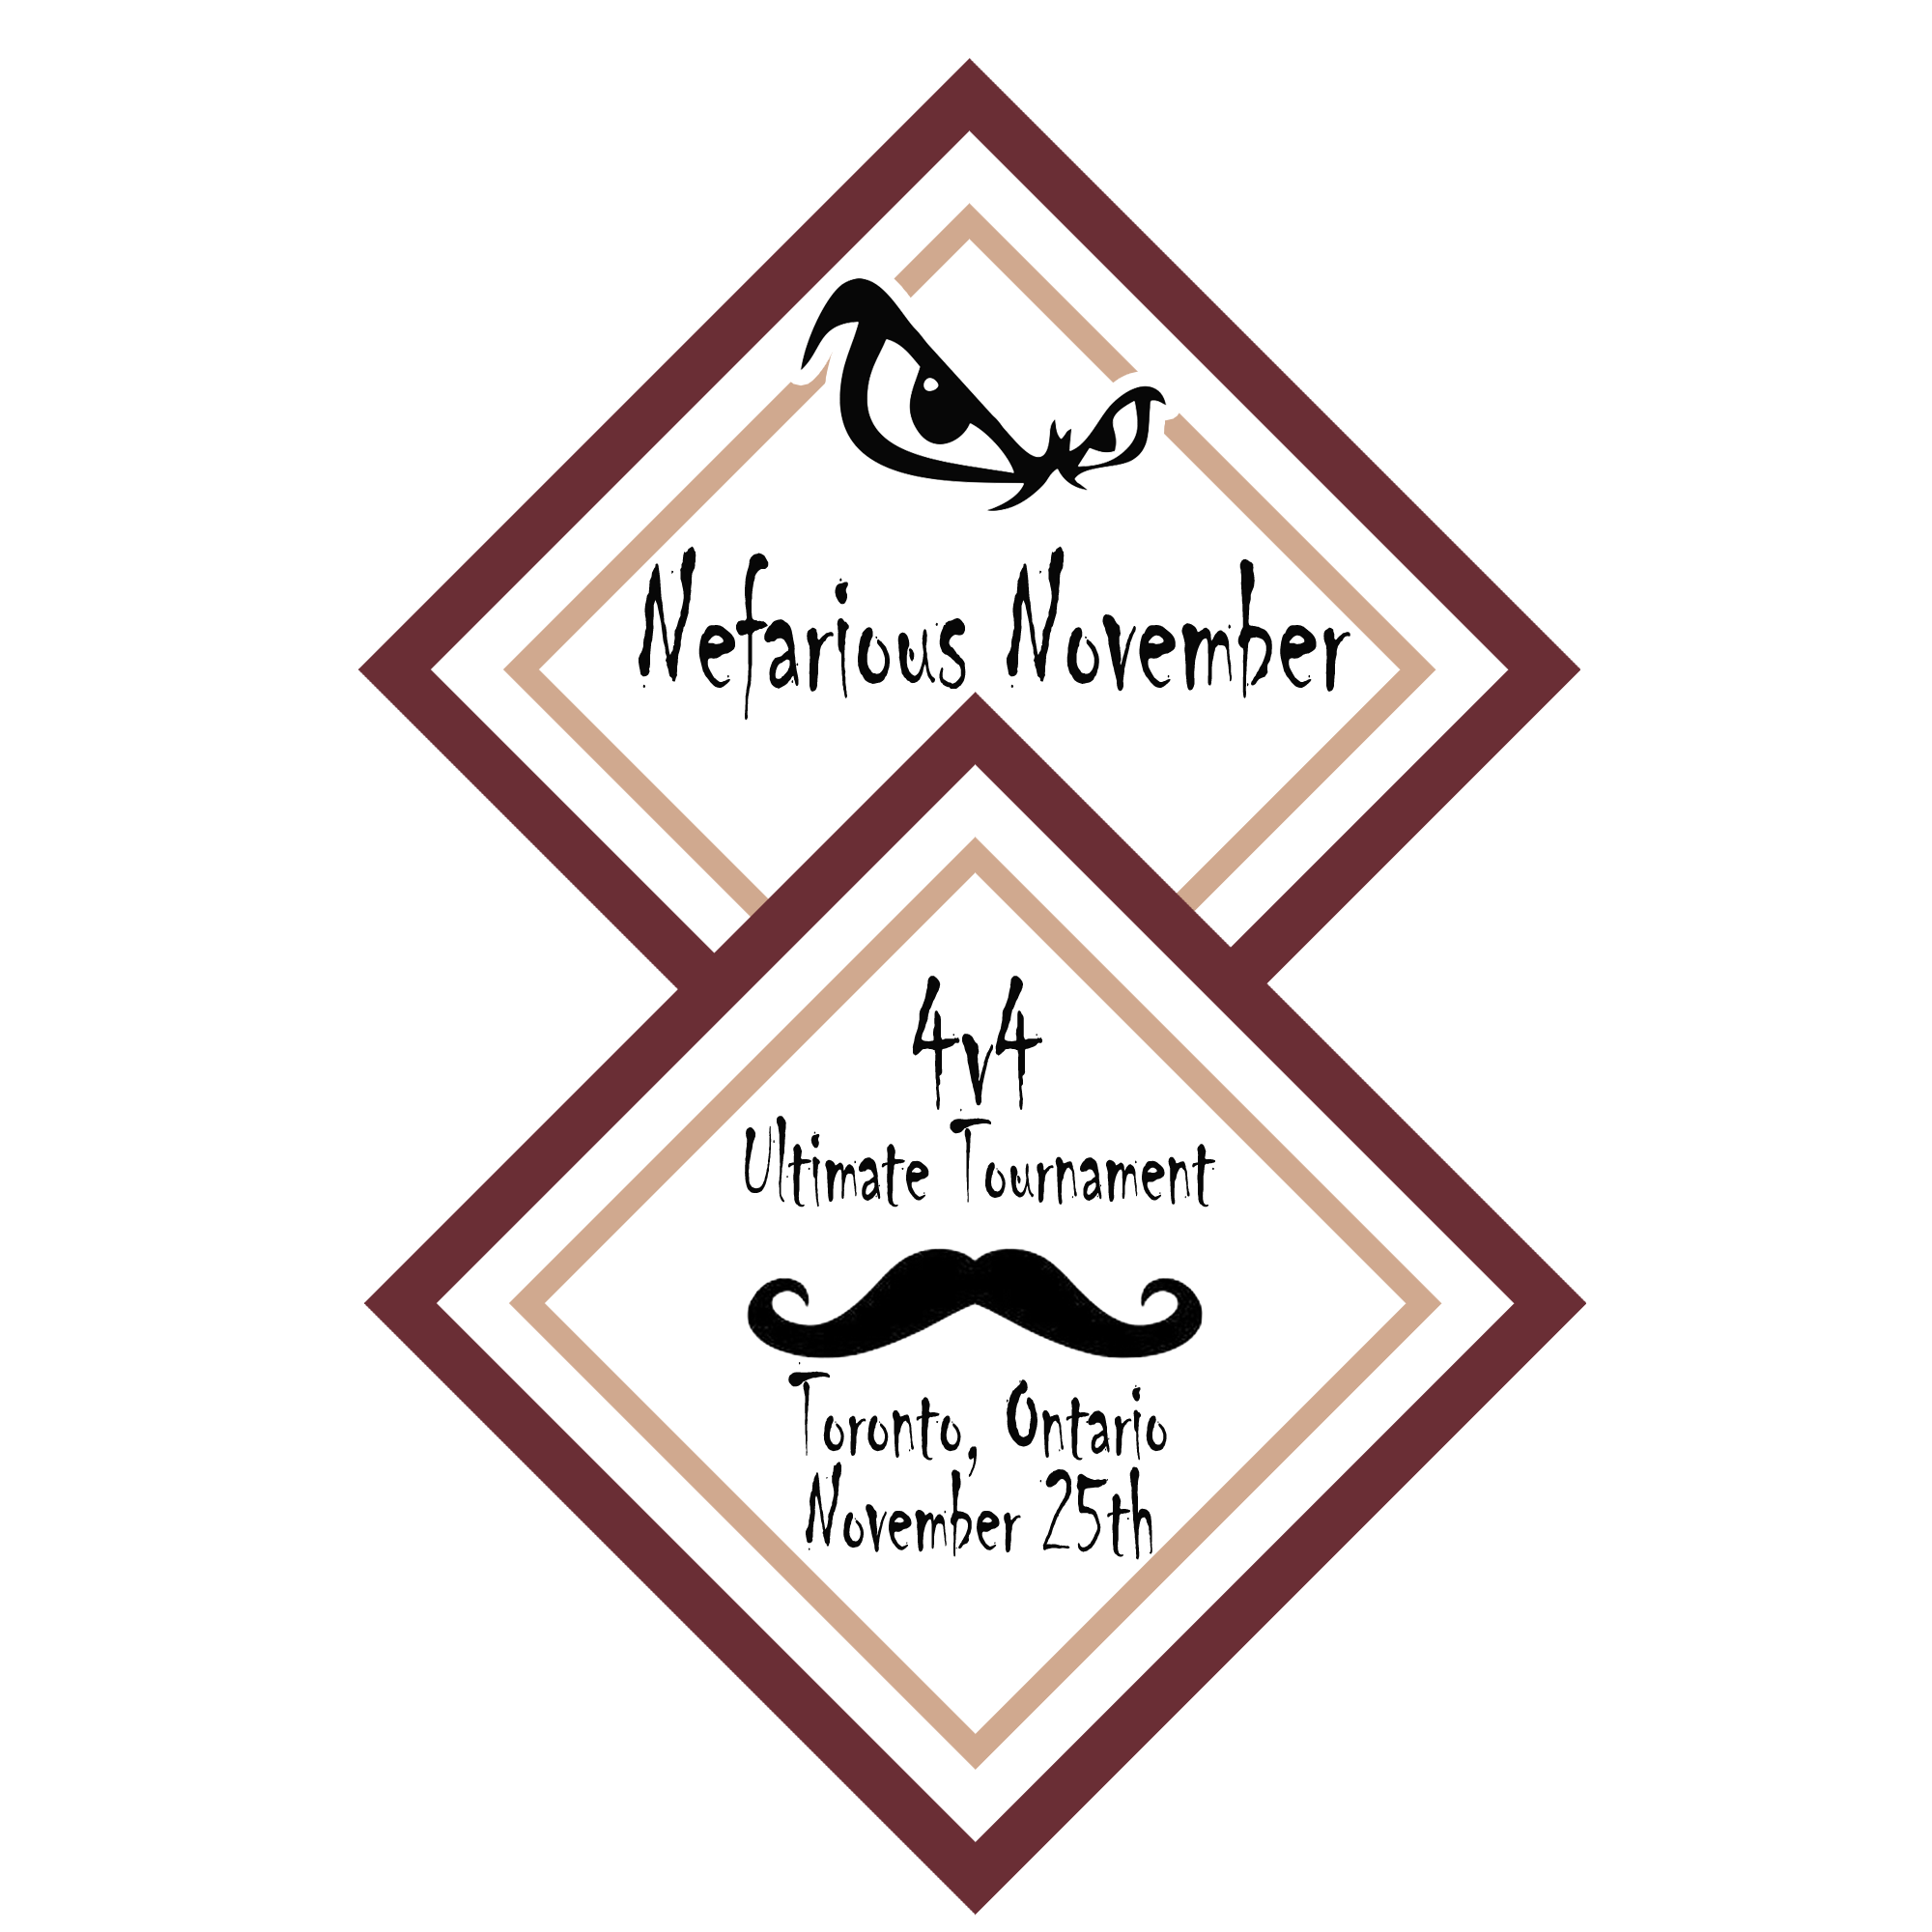 Nefarious November logo